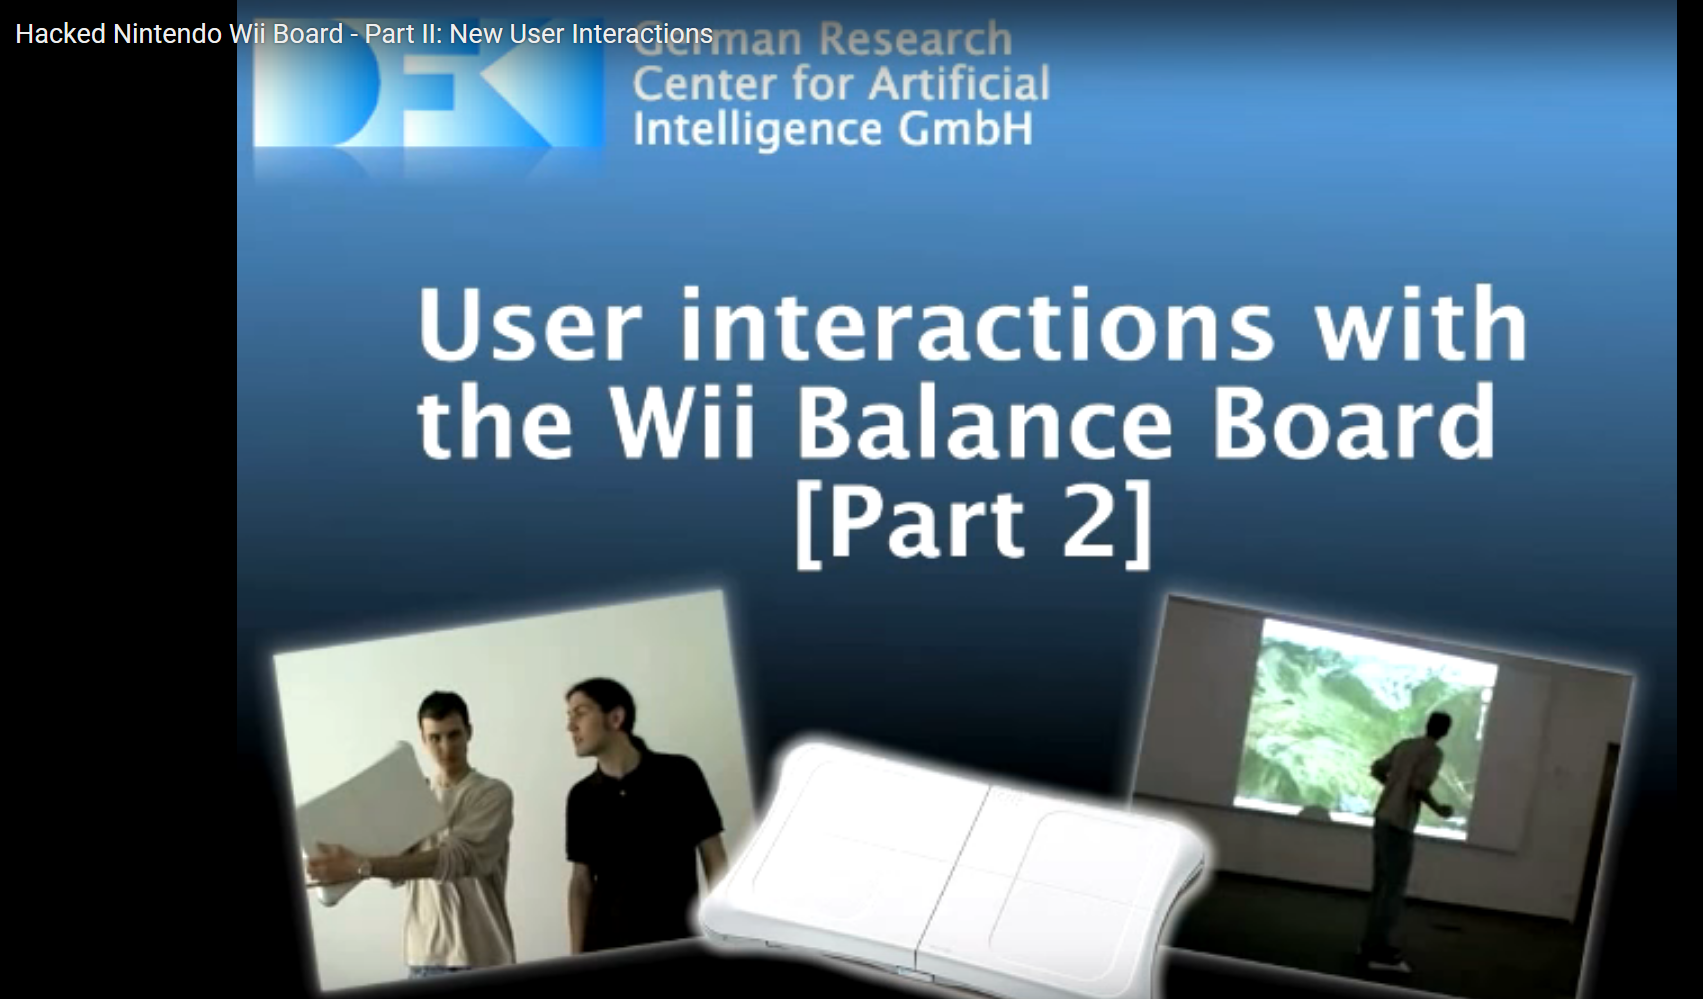 Interaction with the Wii Balance Board Part II